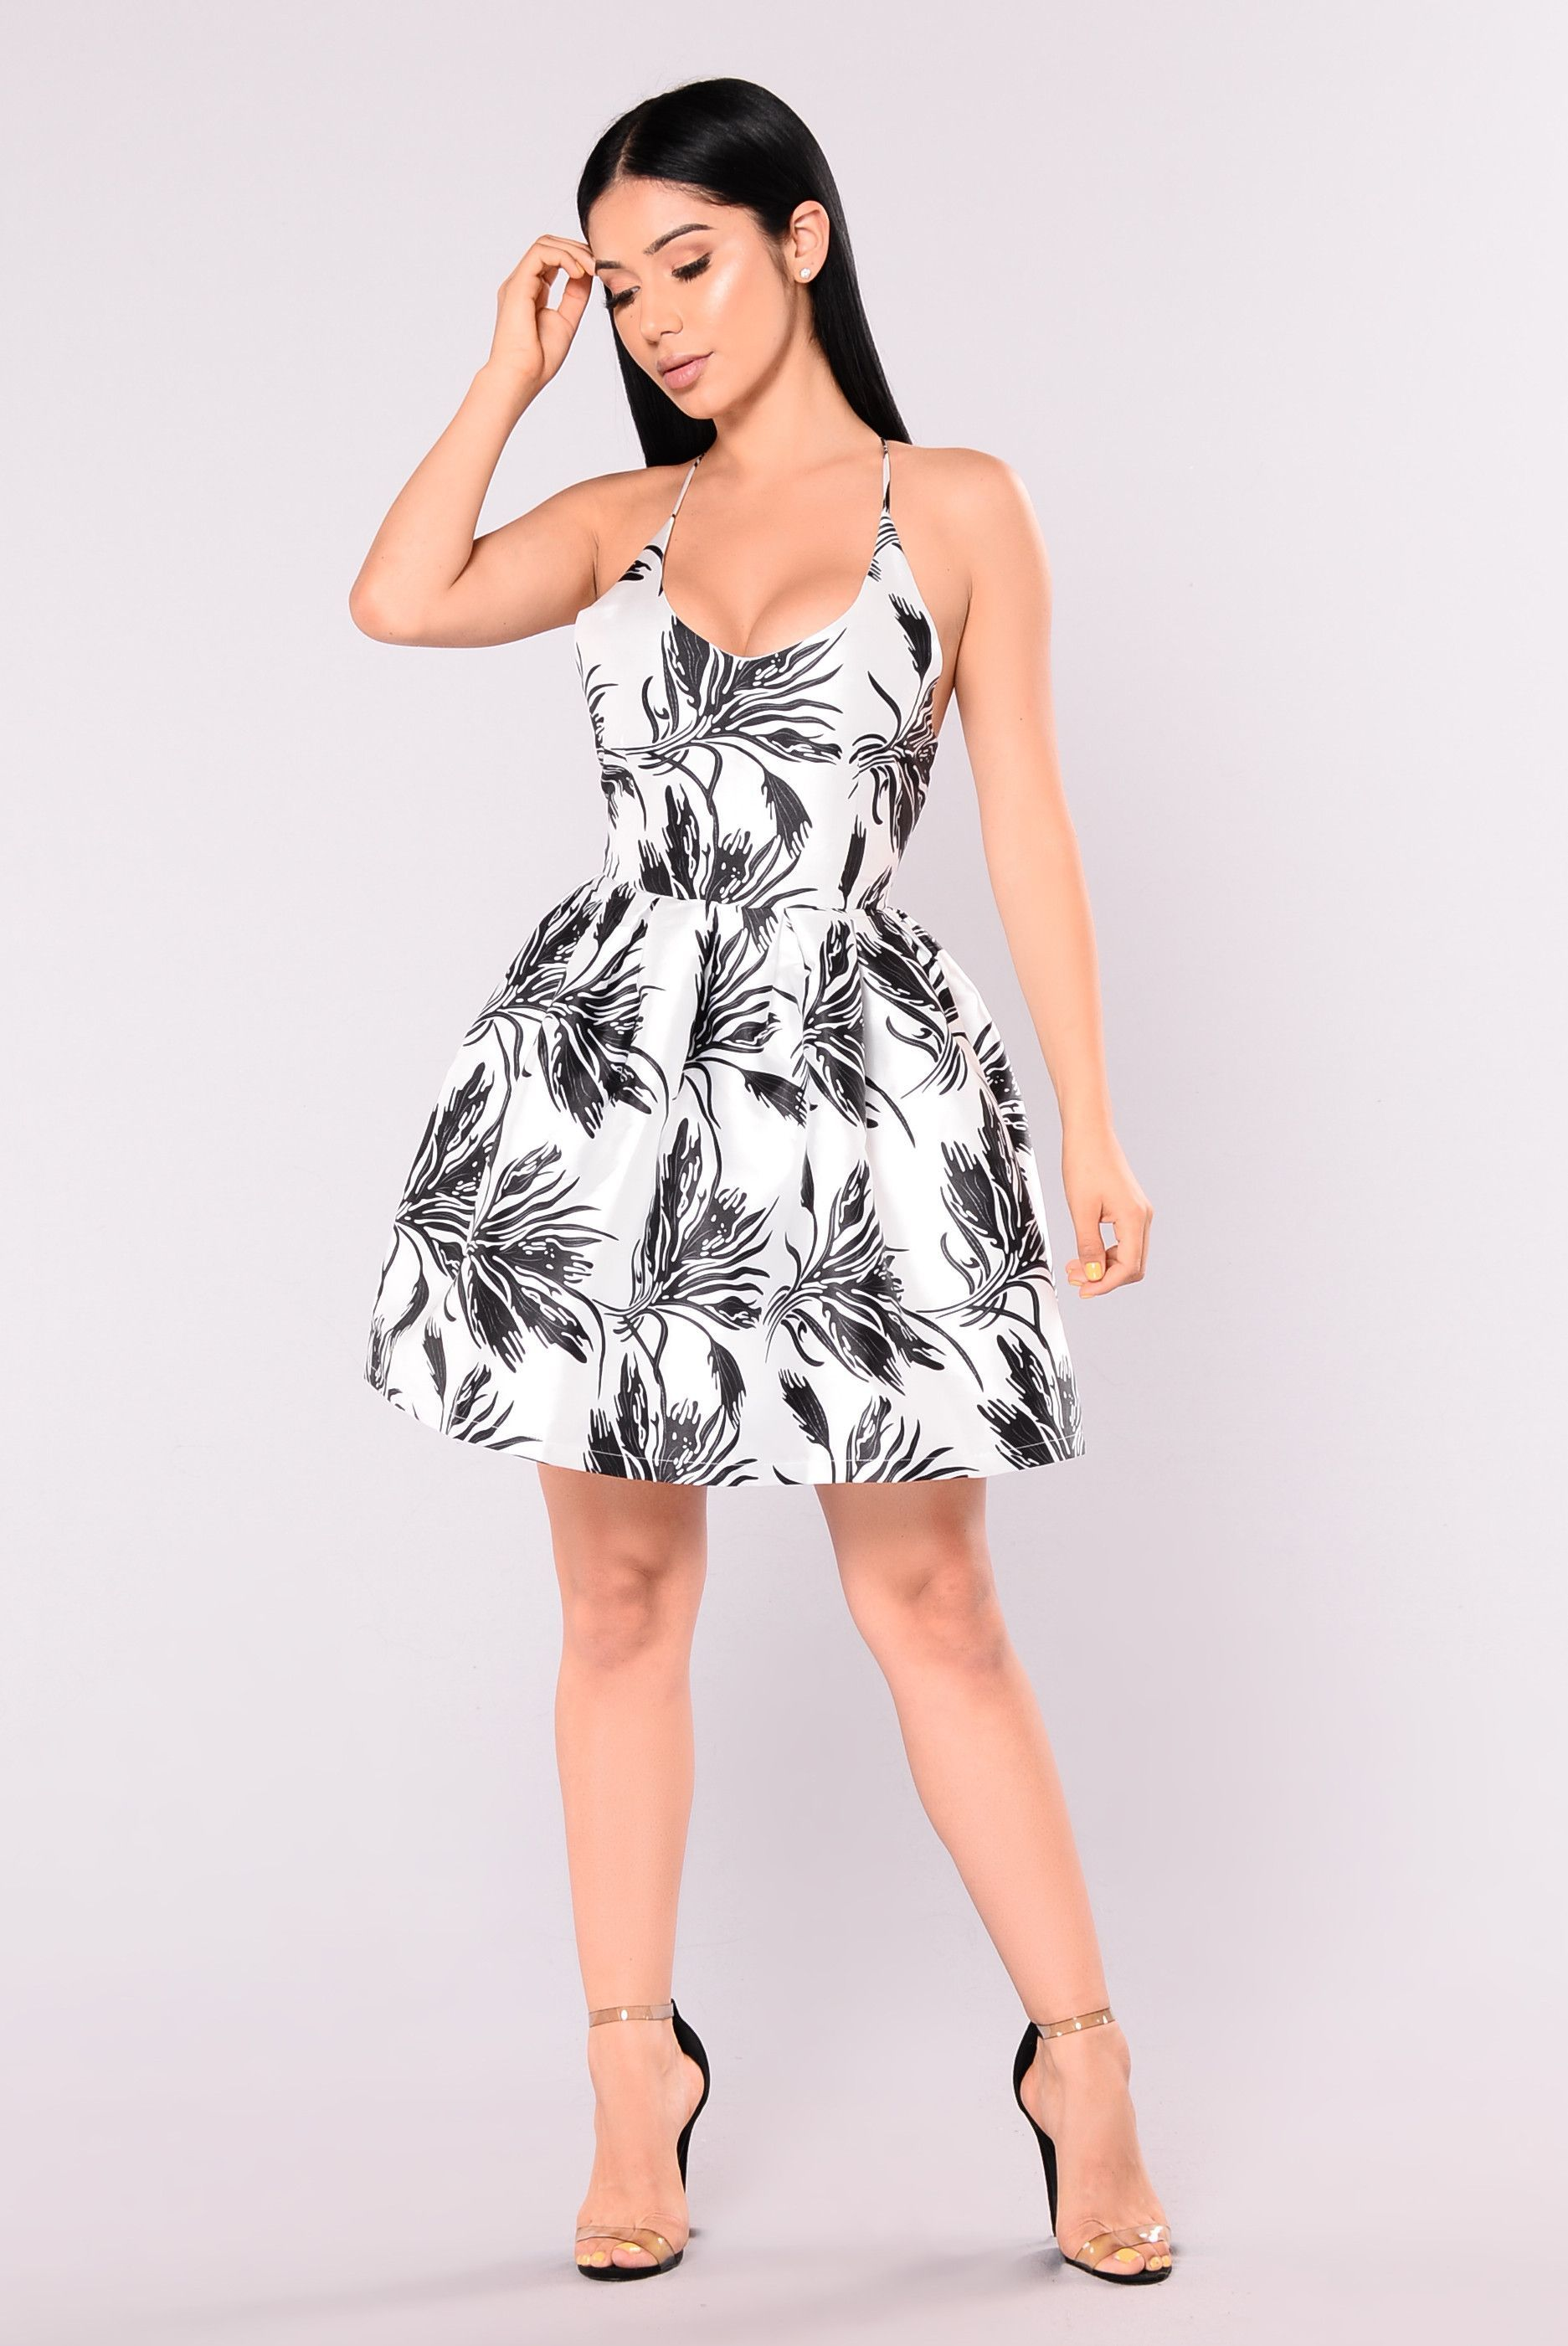 Summer Party Dress Black White Summer Party Dress White Summer Outfits Short Dresses Casual